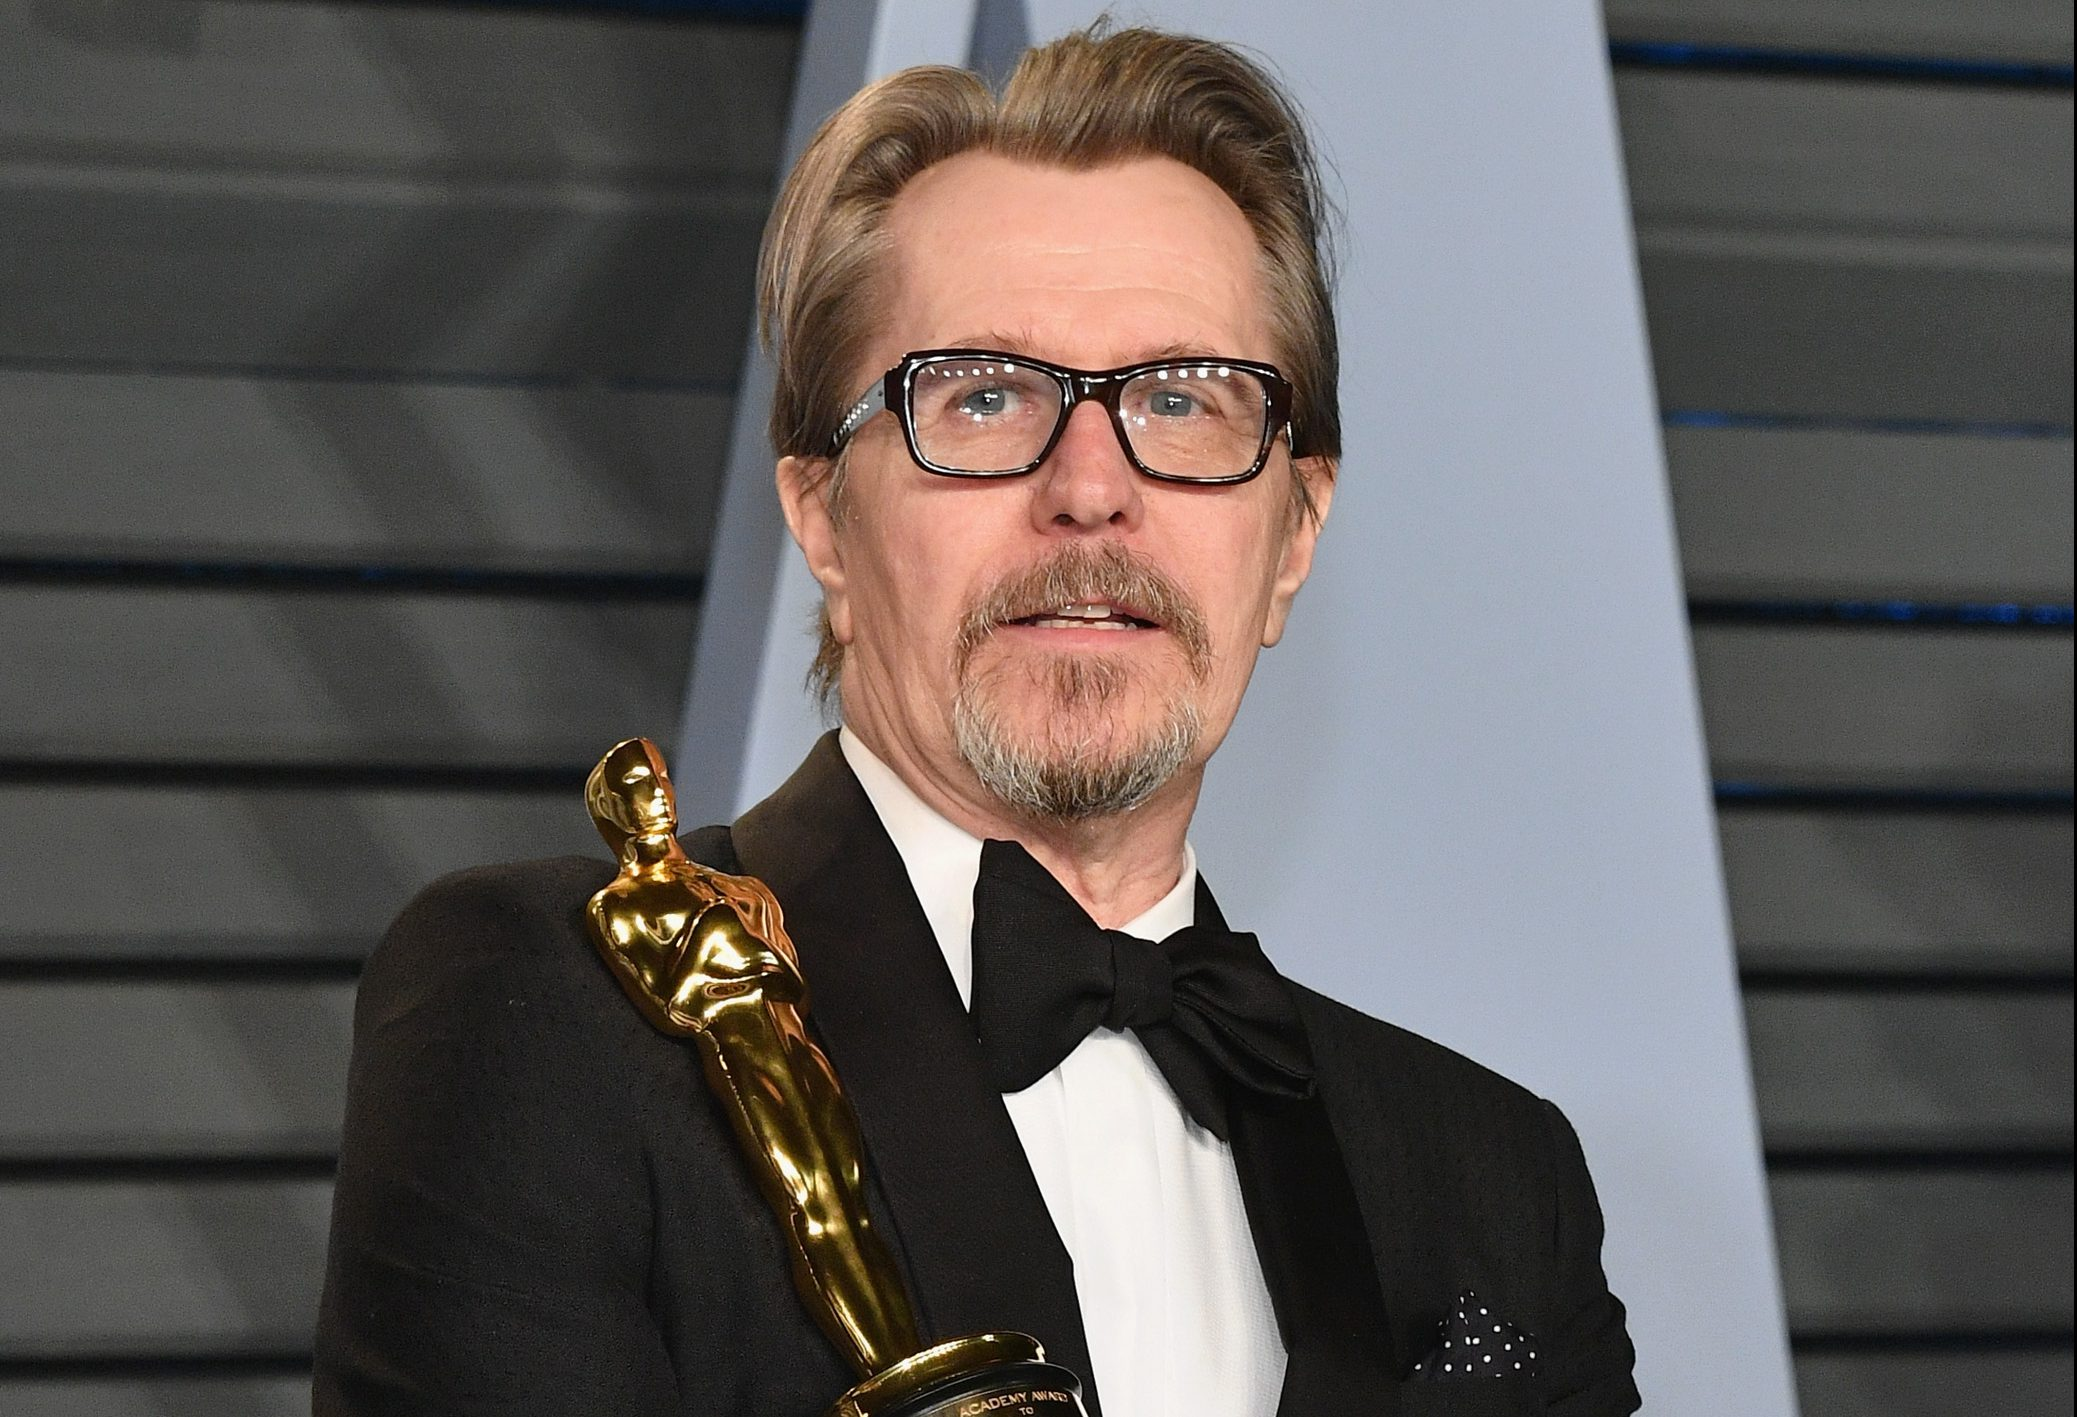 Gary Oldman age, net worth, EastEnders star sister, five wives and Friends cameo as he wins Best Actor